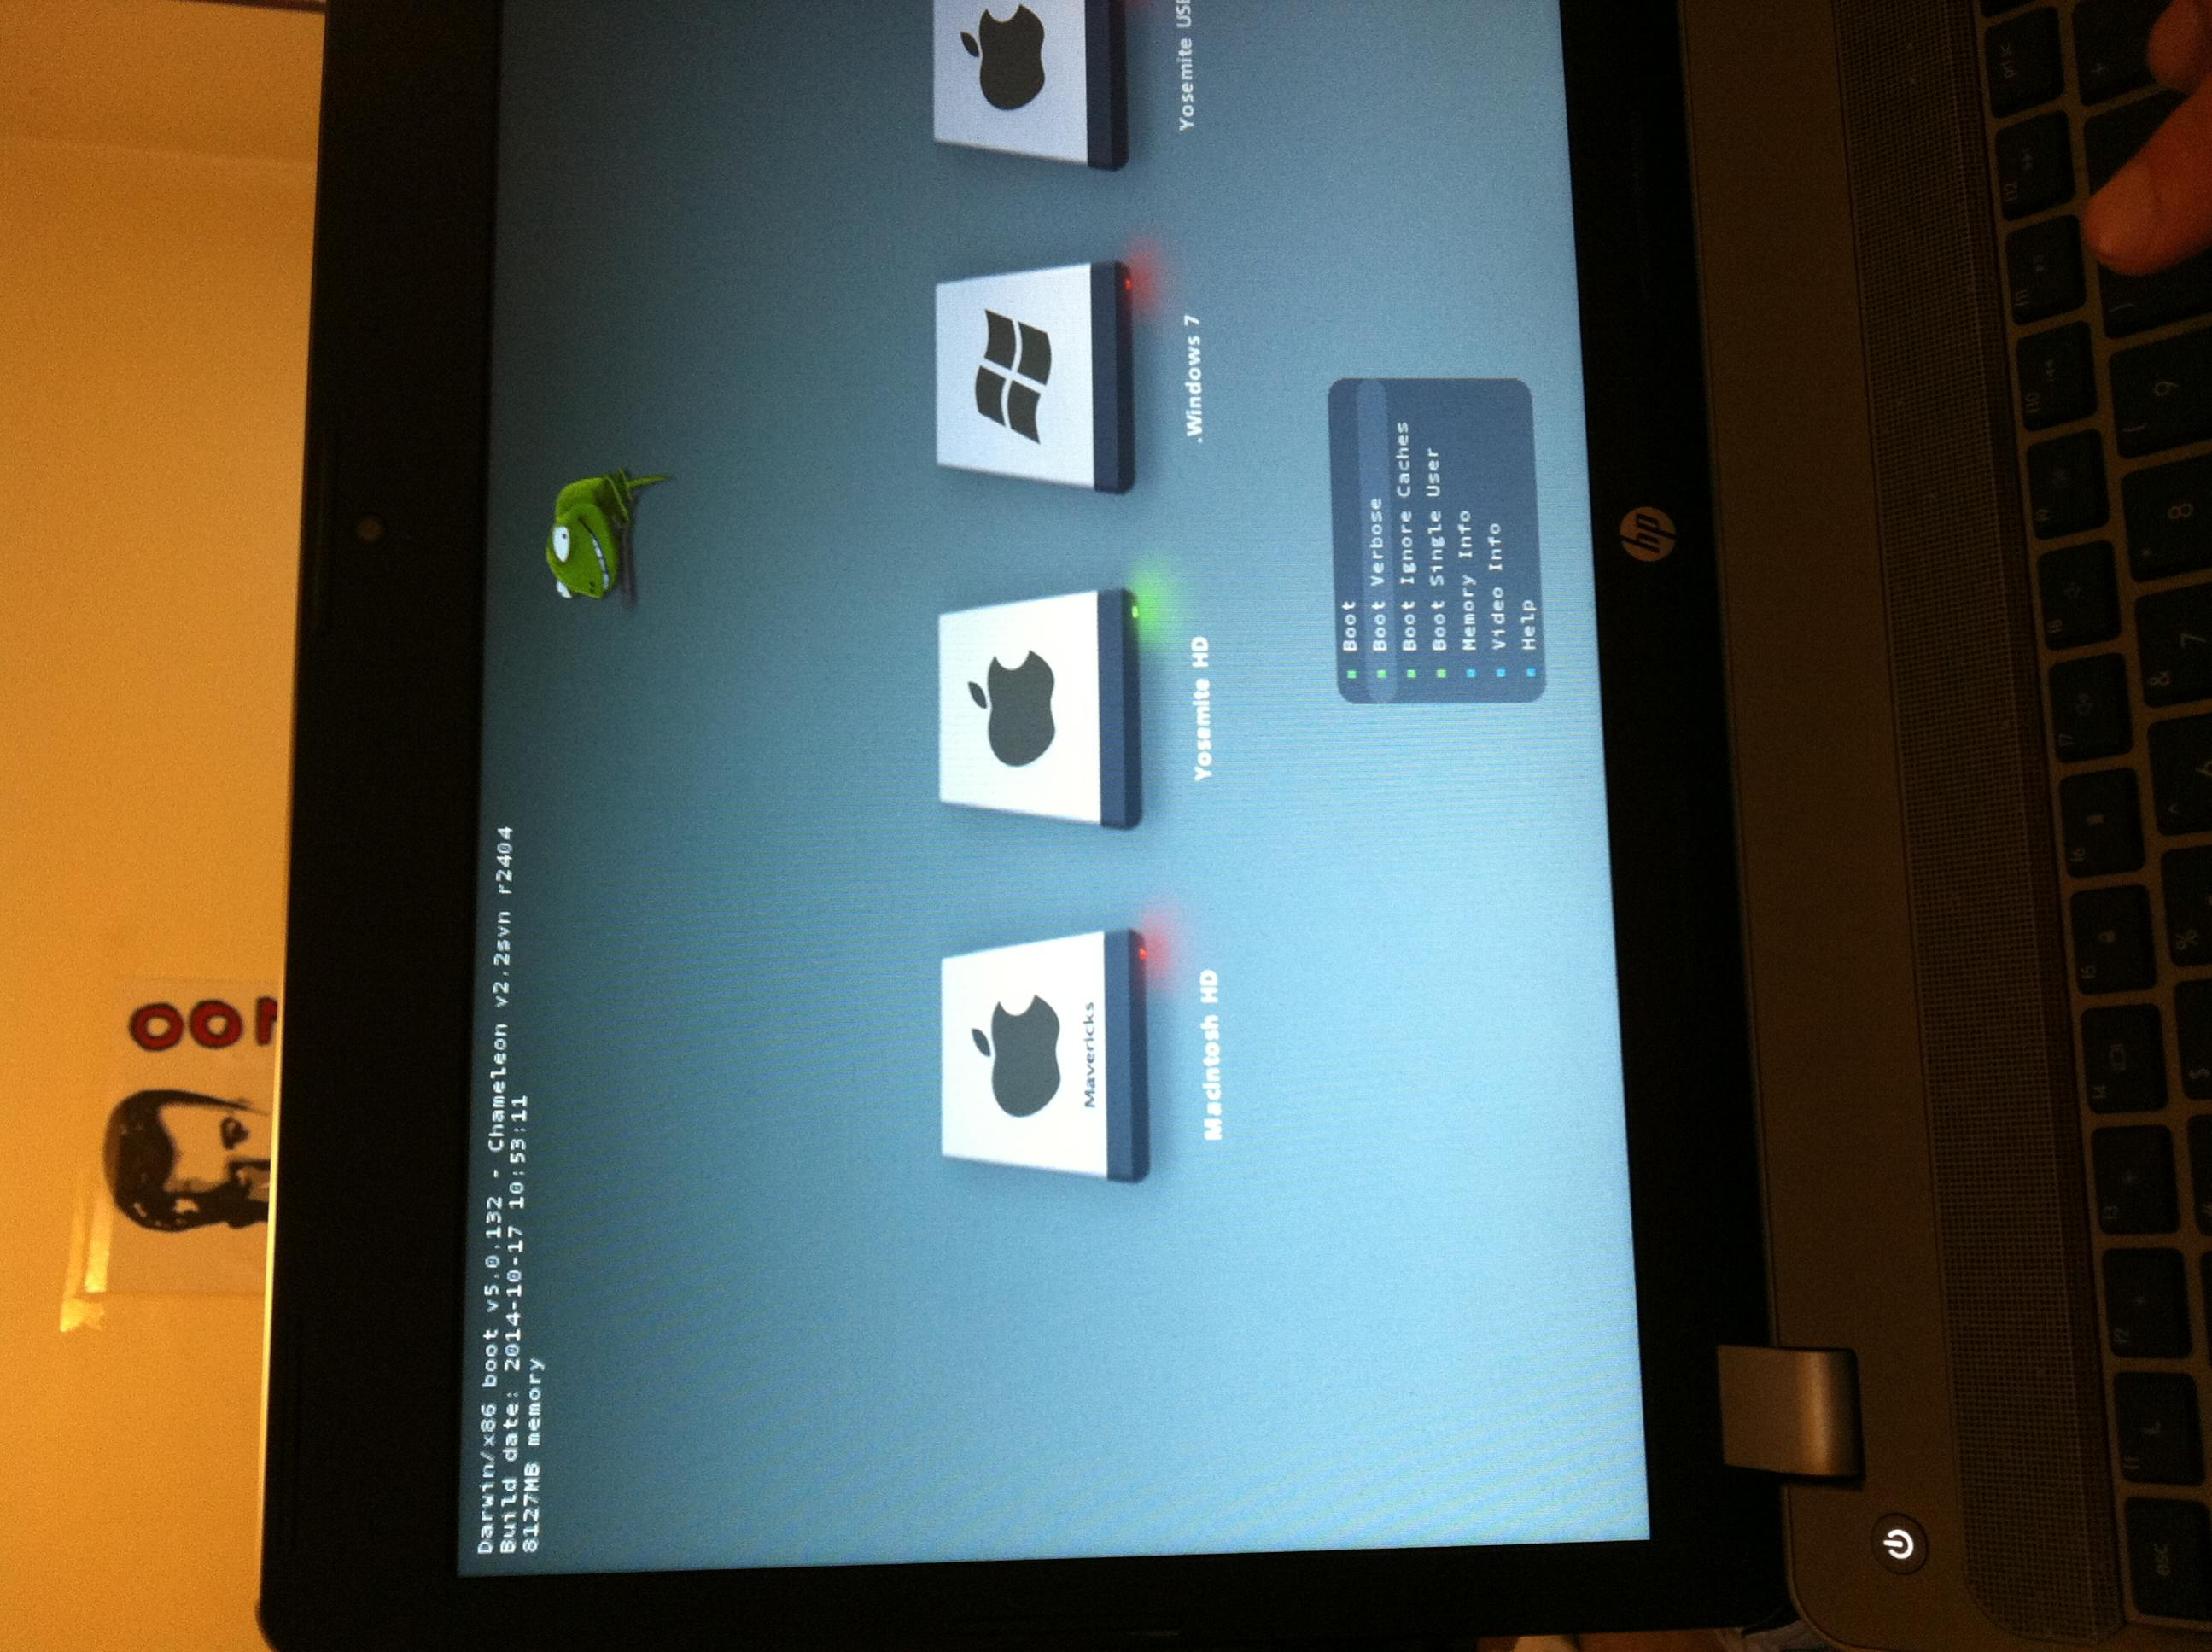 Is it possible to use Chameleon bootloader for Yosemite